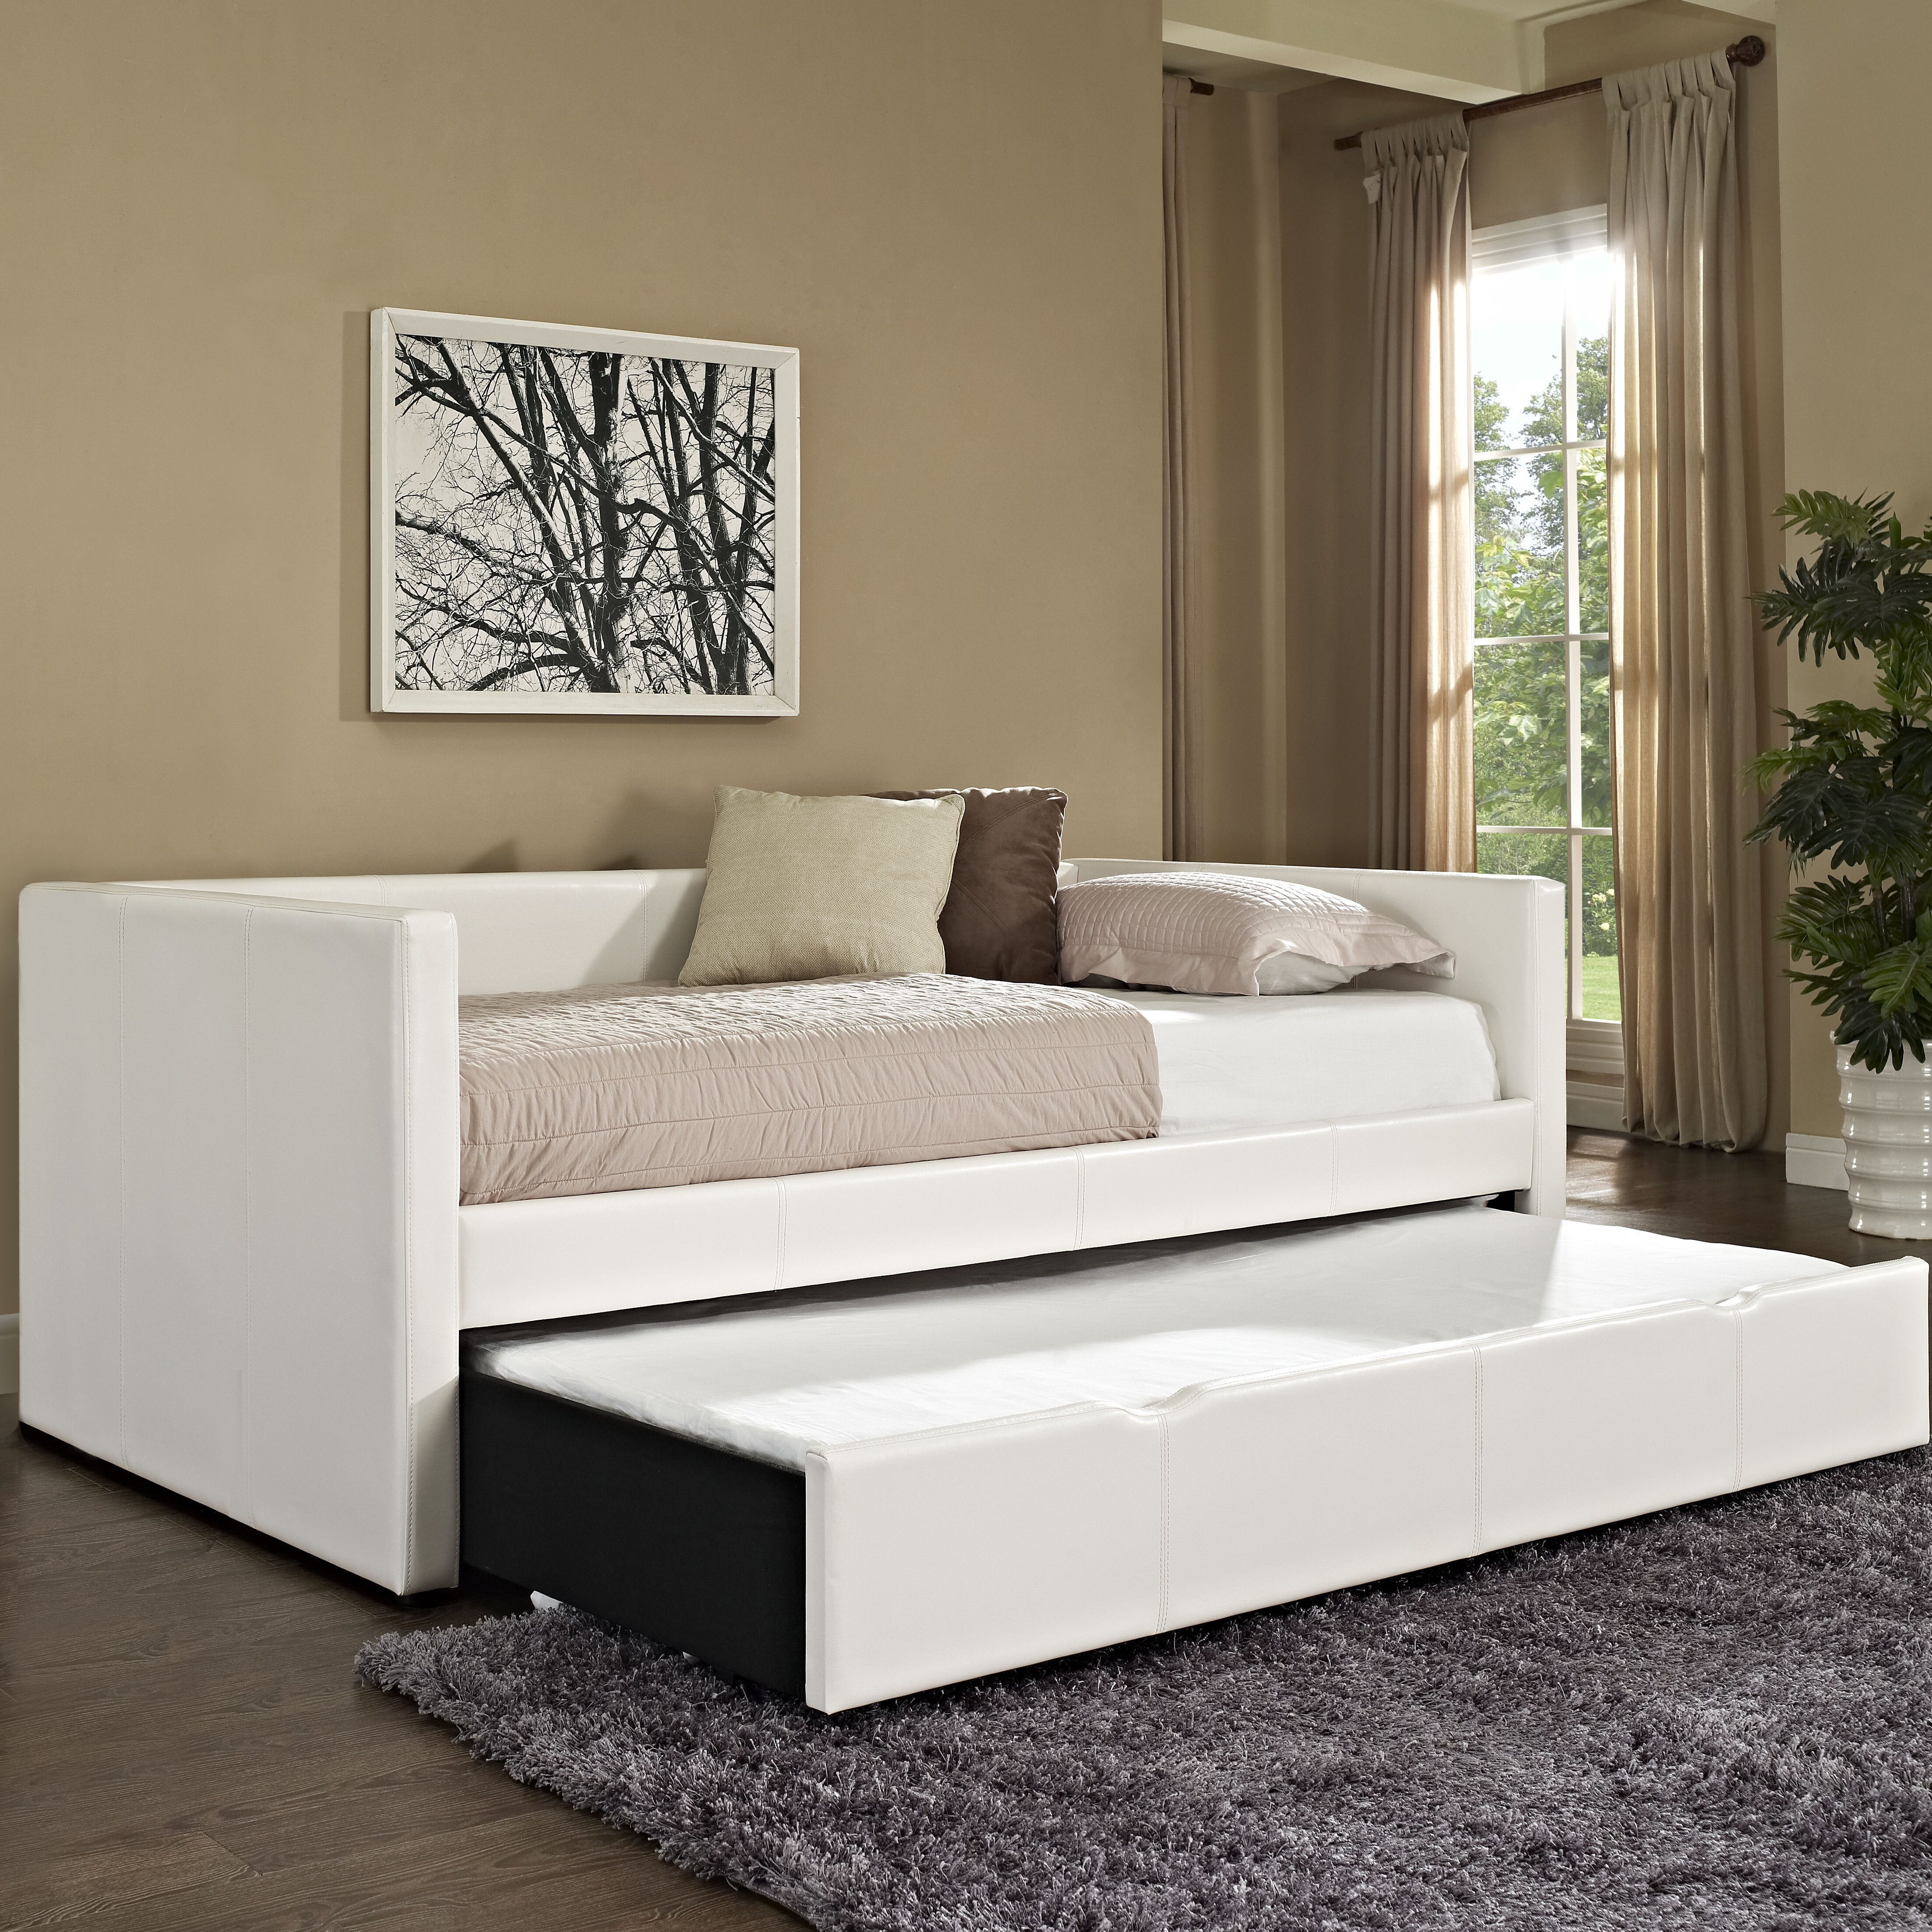 Standard Furniture Lindsey Daybed With Trundle & Reviews